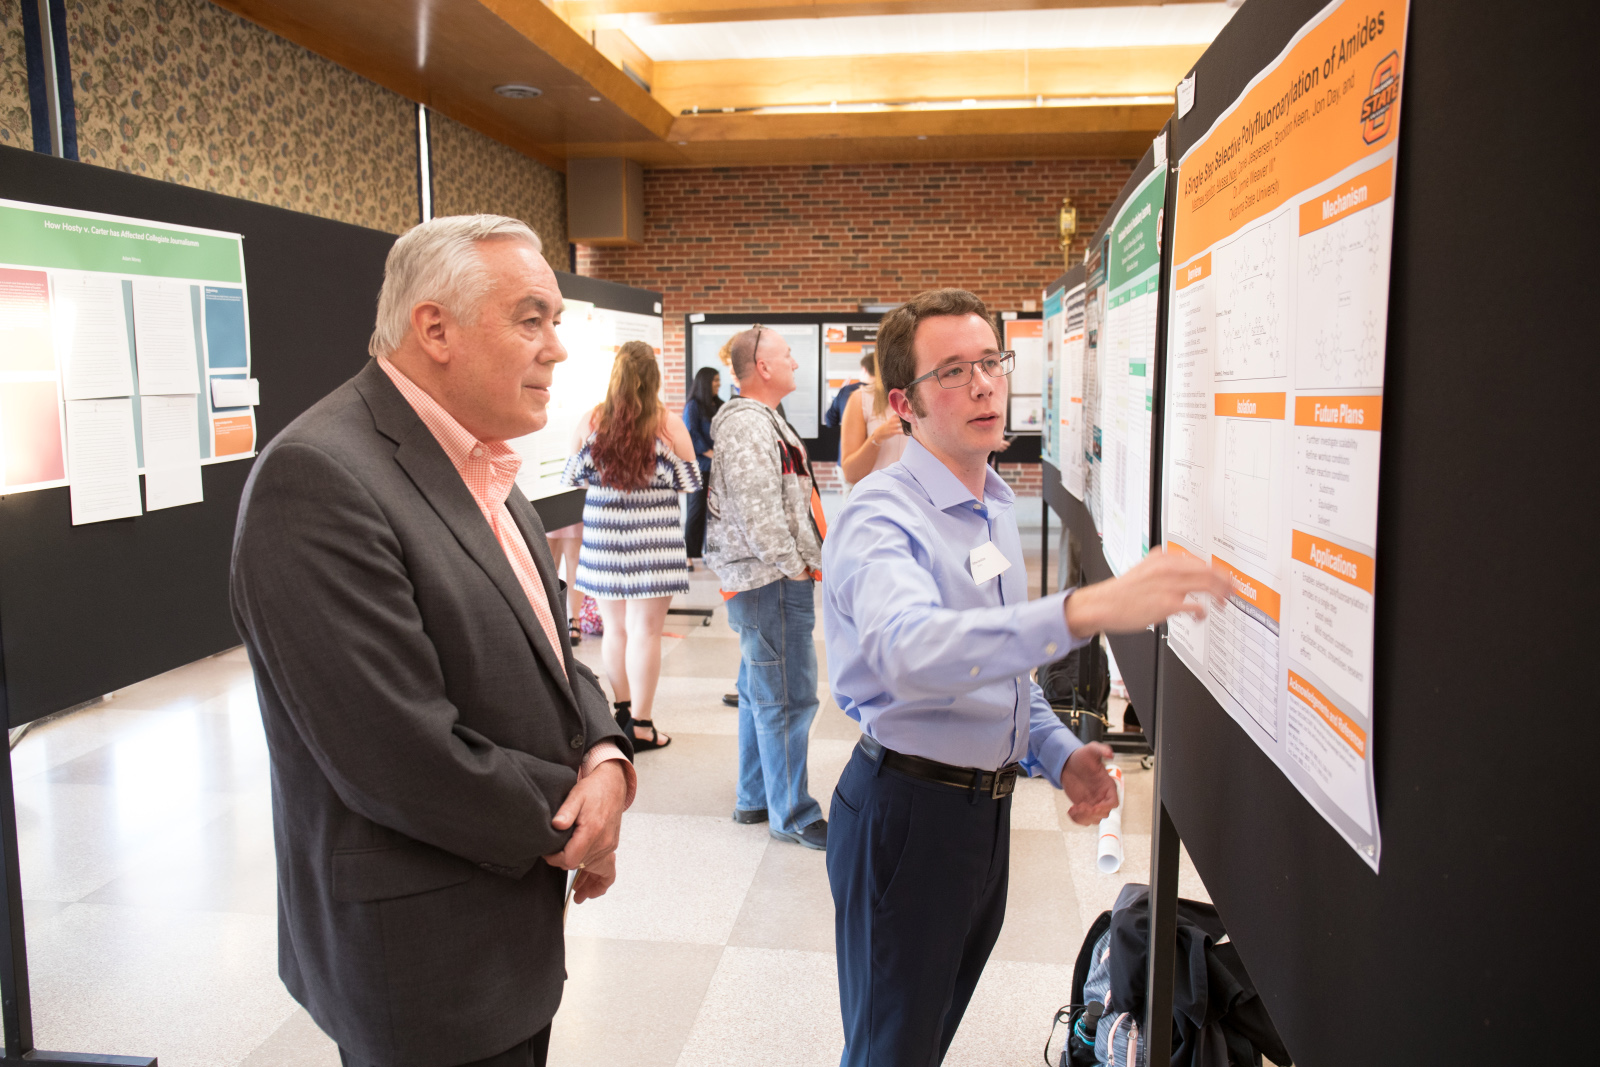 Dr. Sandefur engages with freshman research presenter at symposium